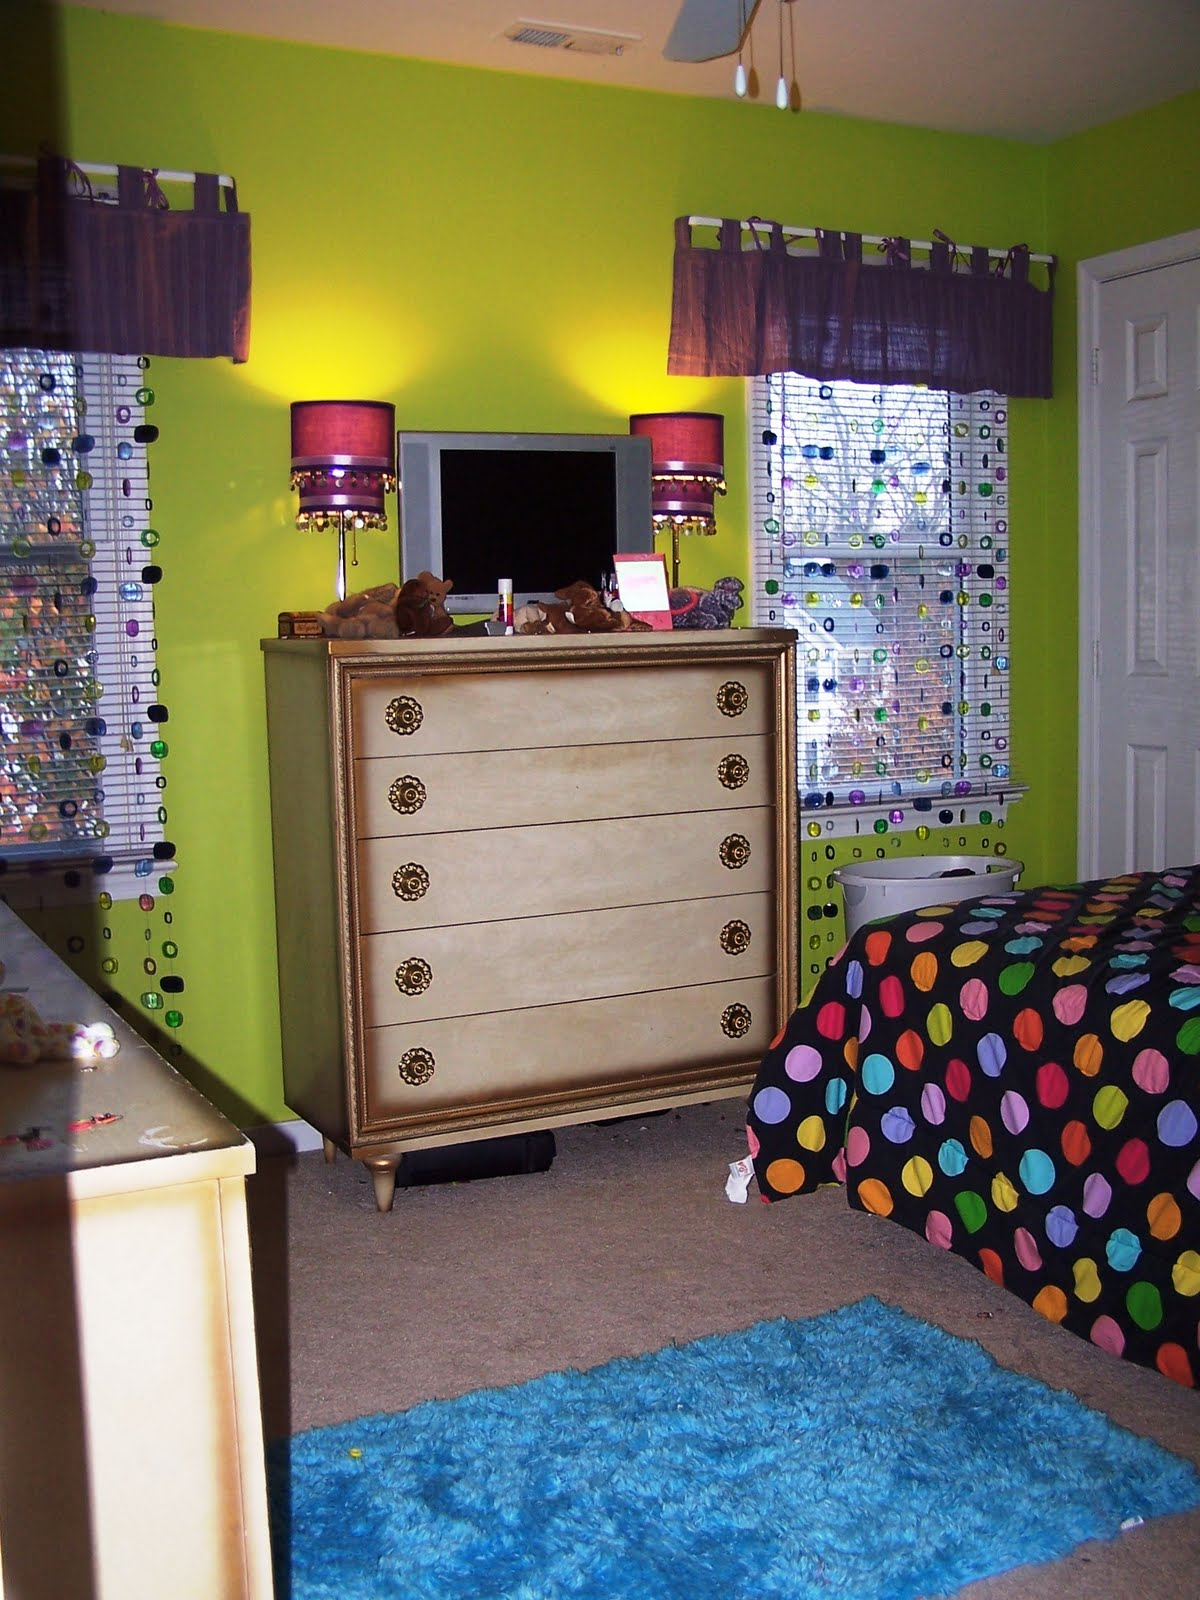 Posted by cheryl gallagher for Green and purple bedroom designs